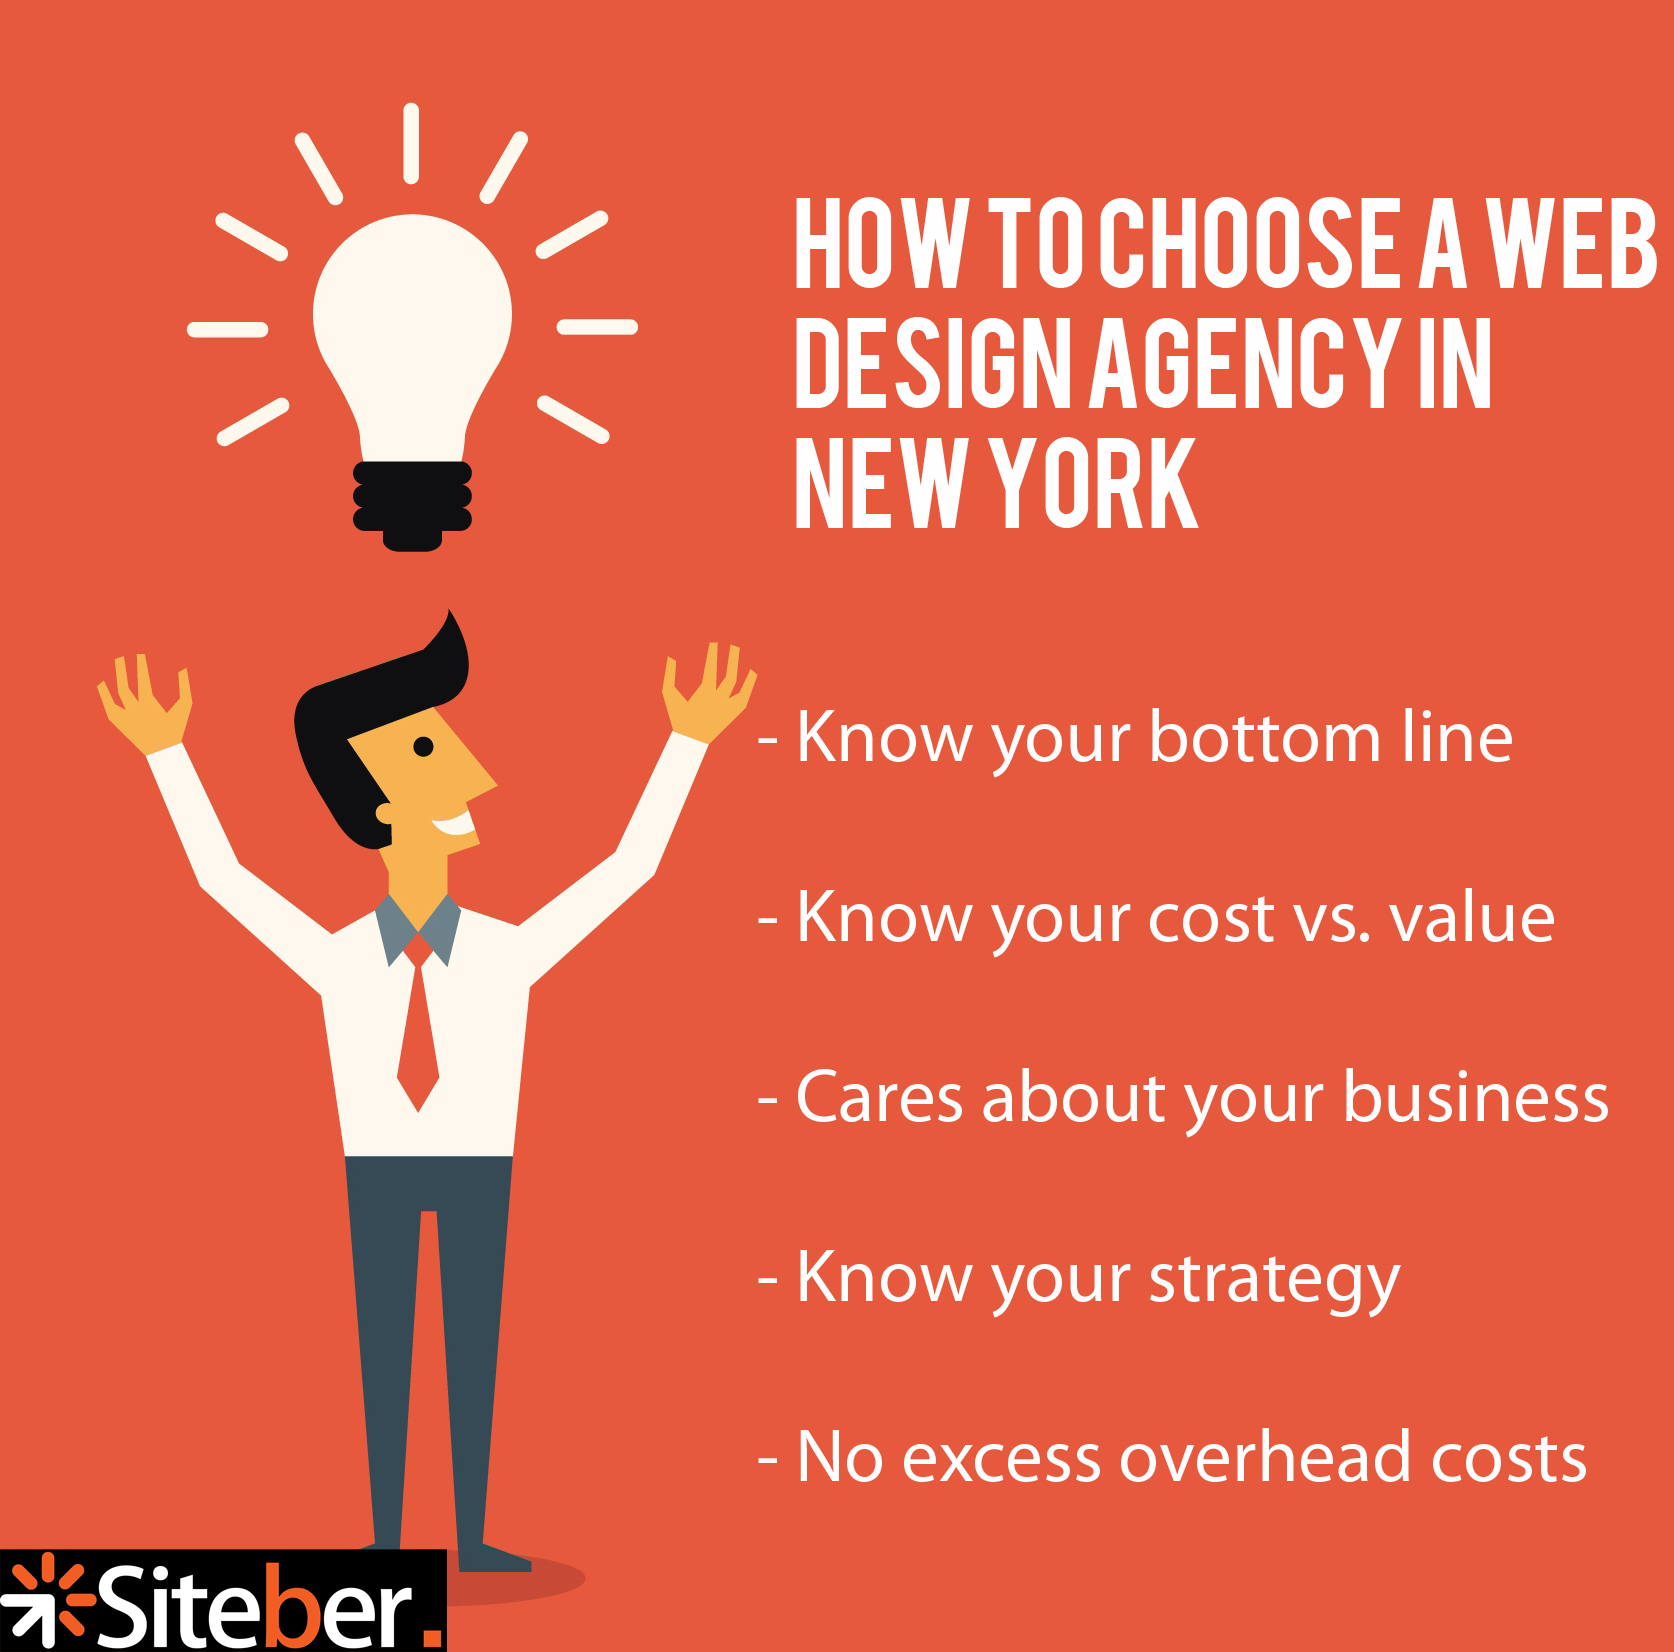 How to Choose a Web Design Agency in New York